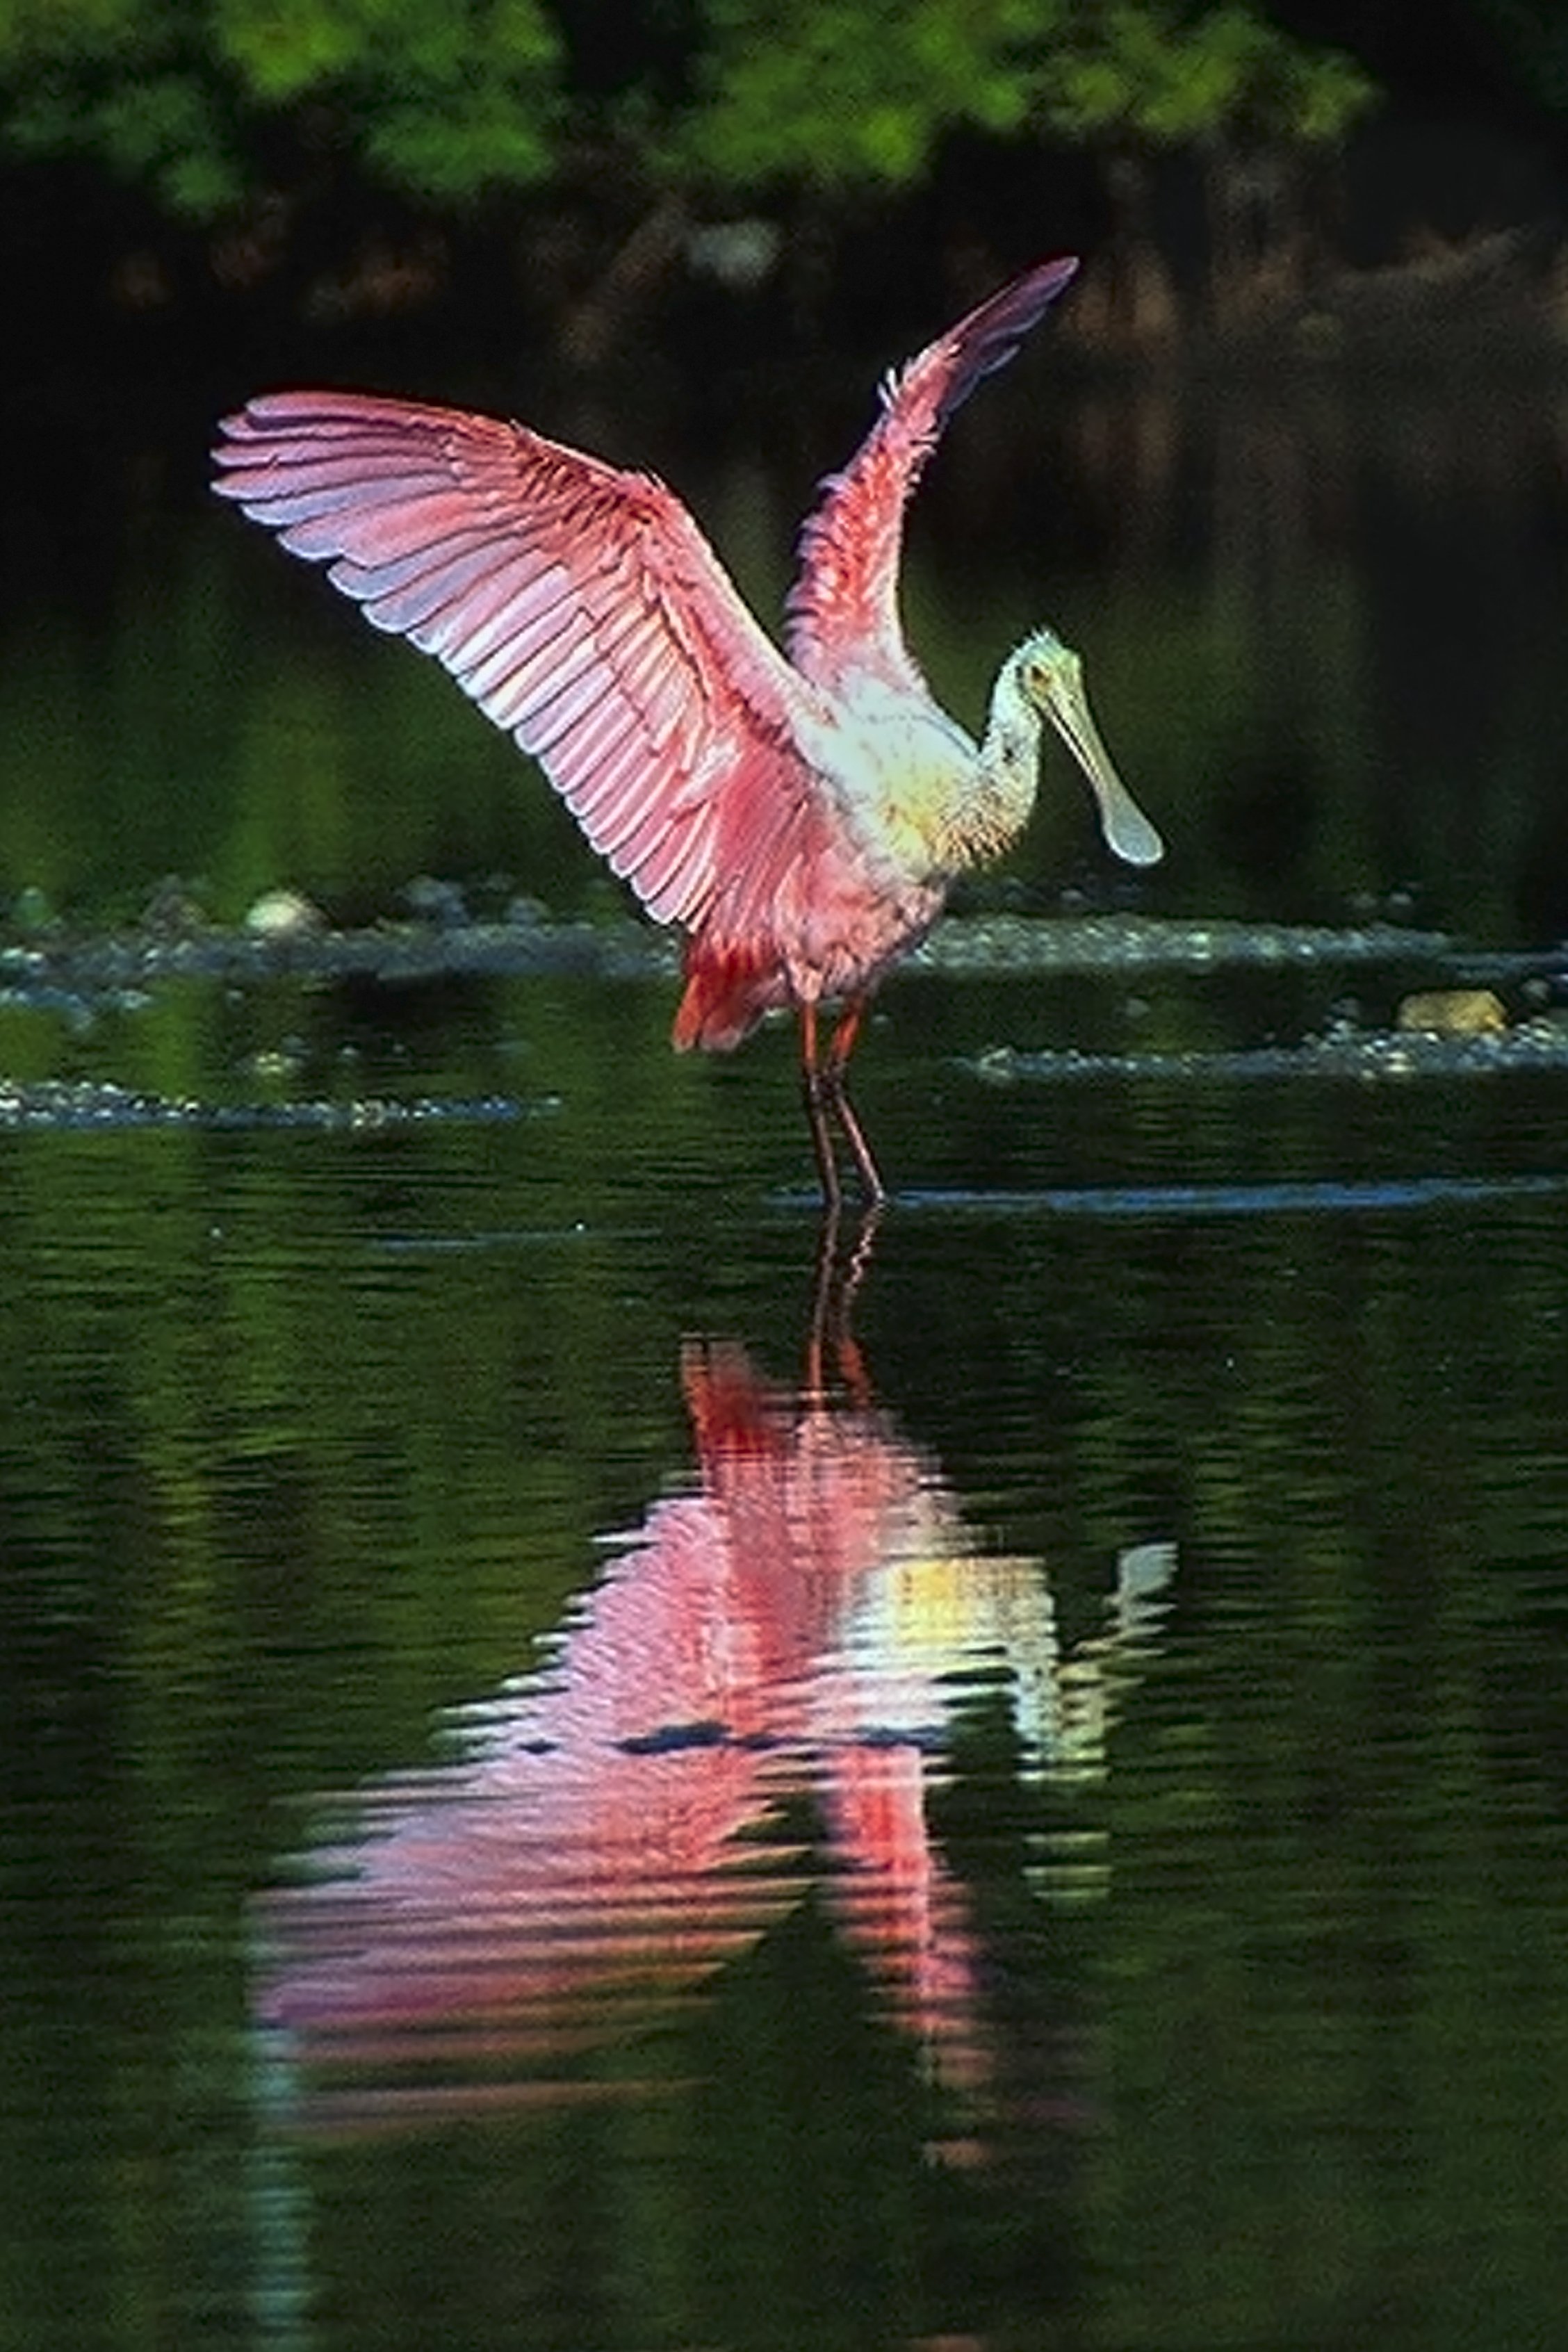 FileRoseate Spoonbill At Ding Darling NWR Sanibel FL